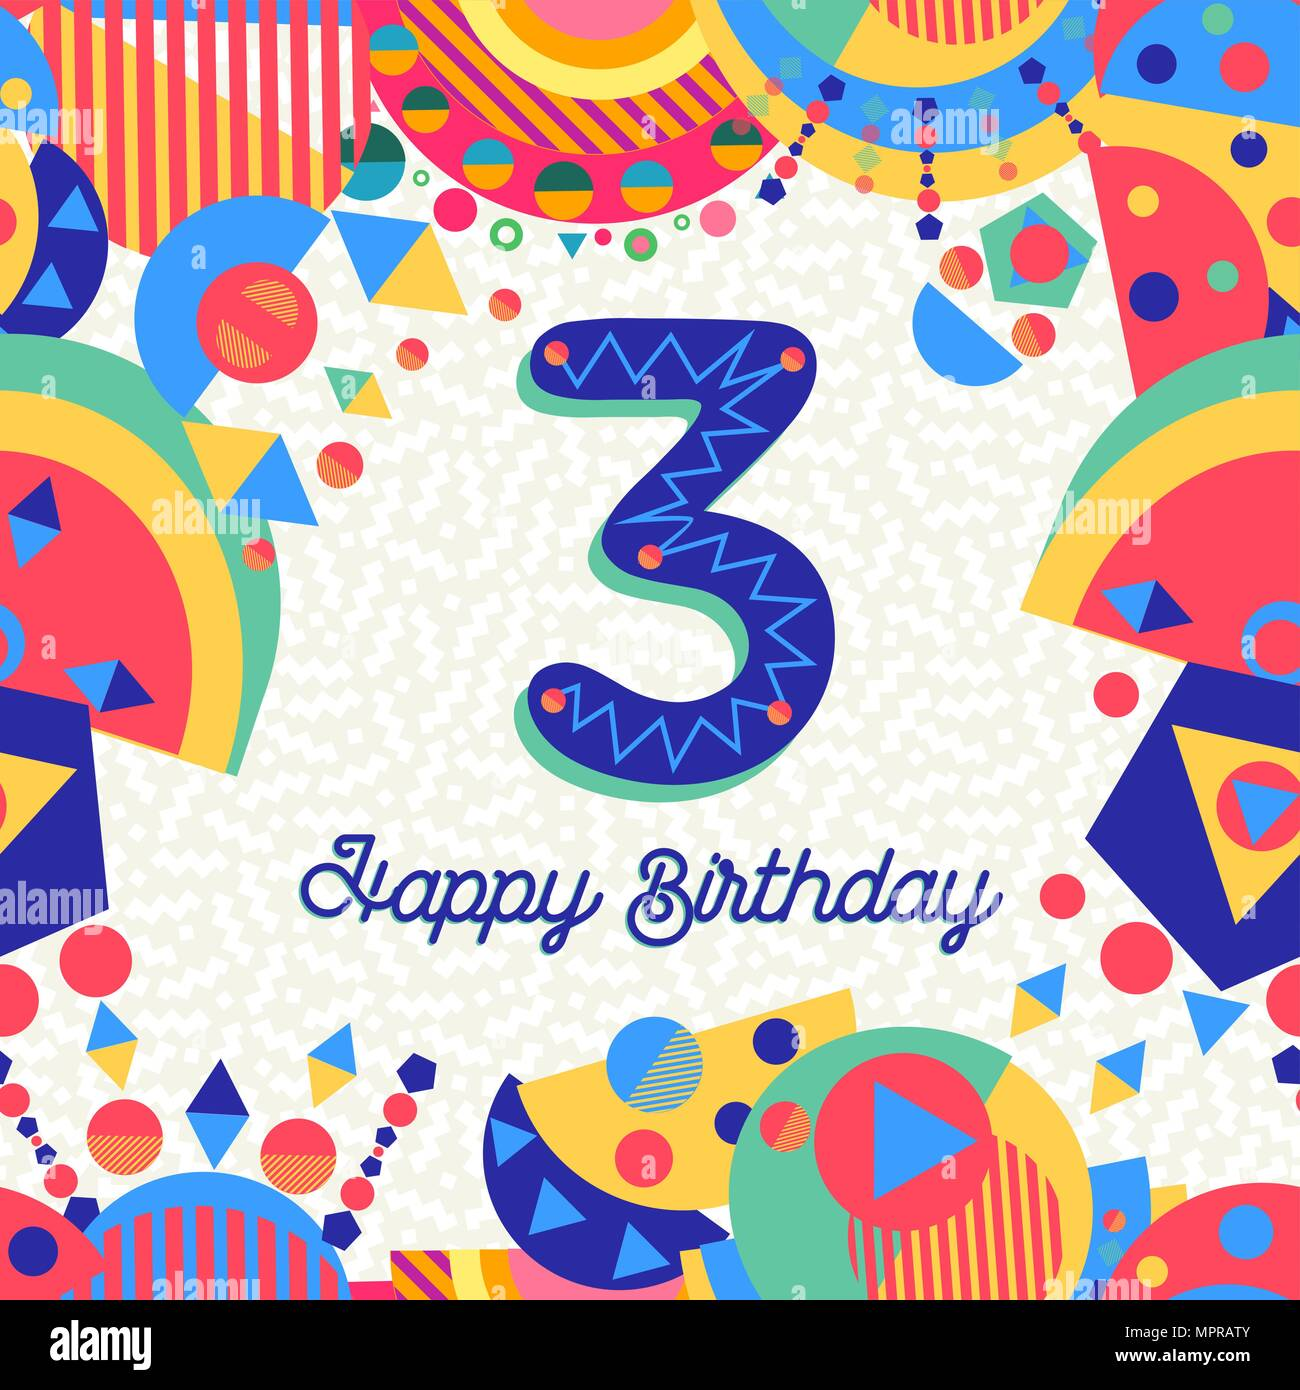 Happy Birthday Three 3 Year Fun Design With Number Text Label And Colorful Decoration Ideal For Party Invitation Or Greeting Card Eps10 Vector Stock Vector Image Art Alamy